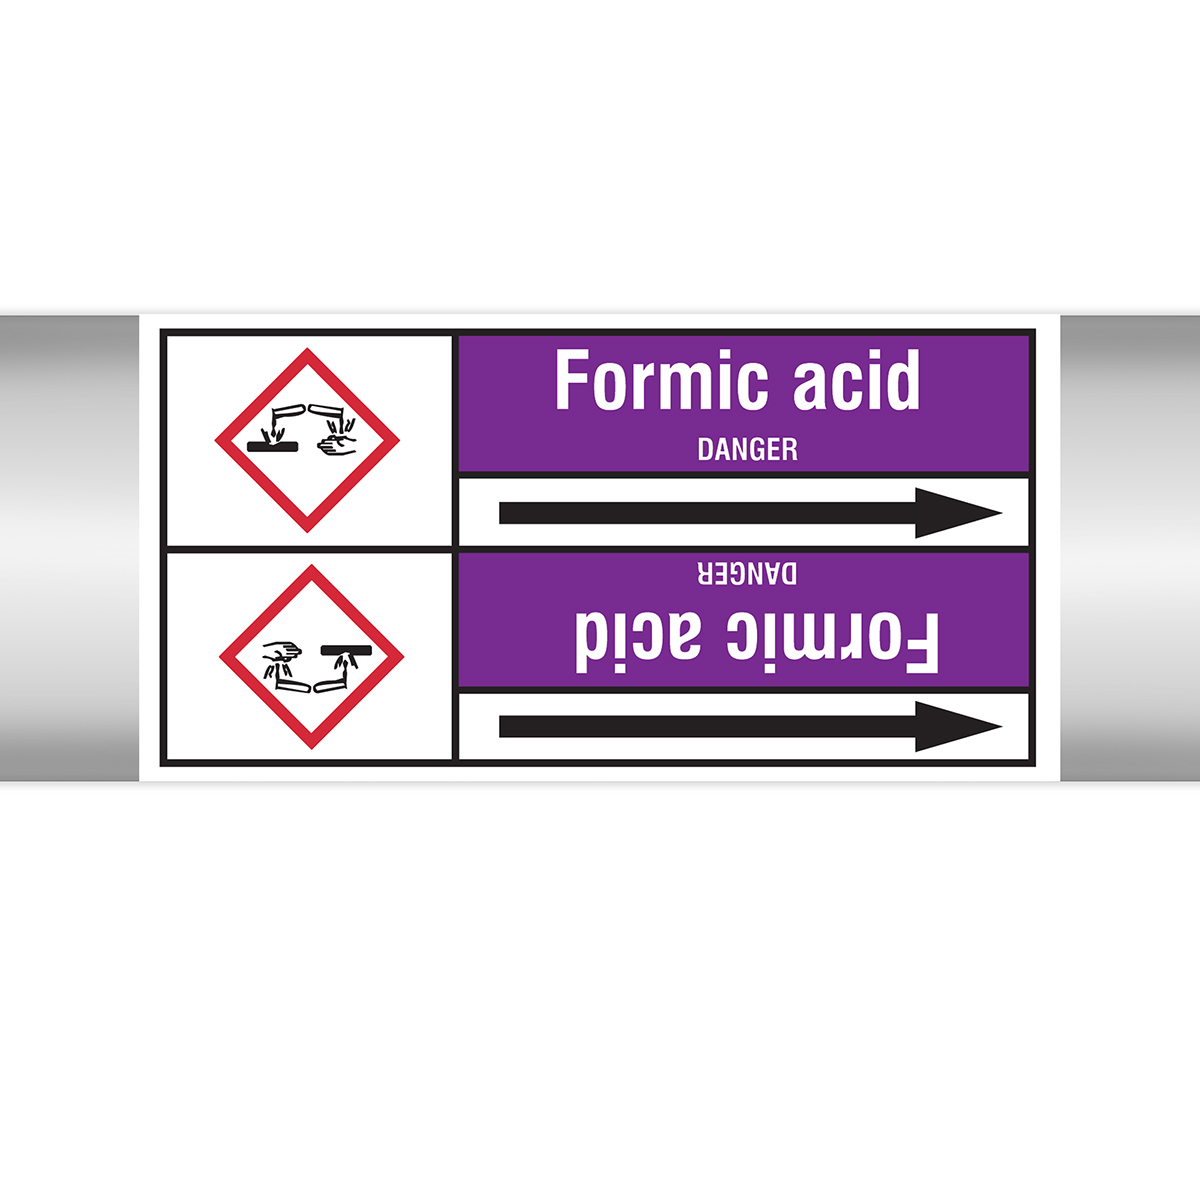 Roll Form Liner-less Type 2 - Formic Acid